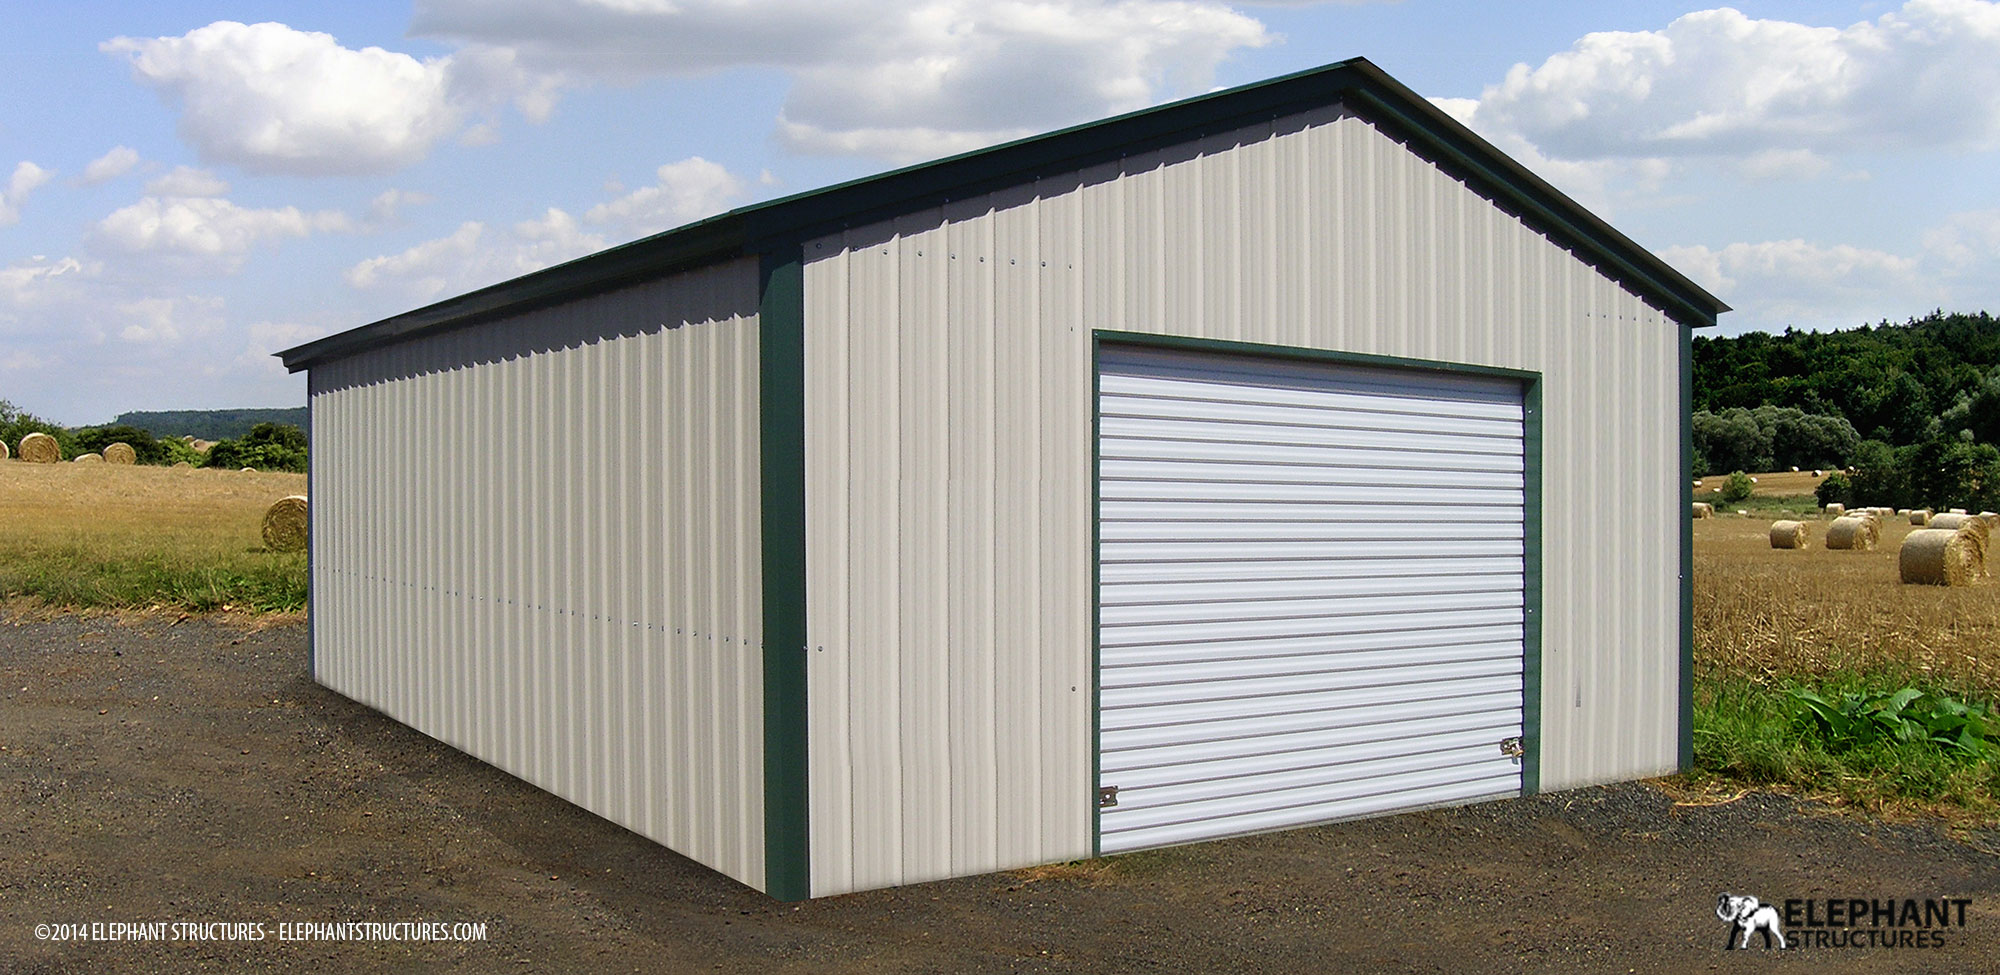 Metal buildings garages carports barns online for Barns garages